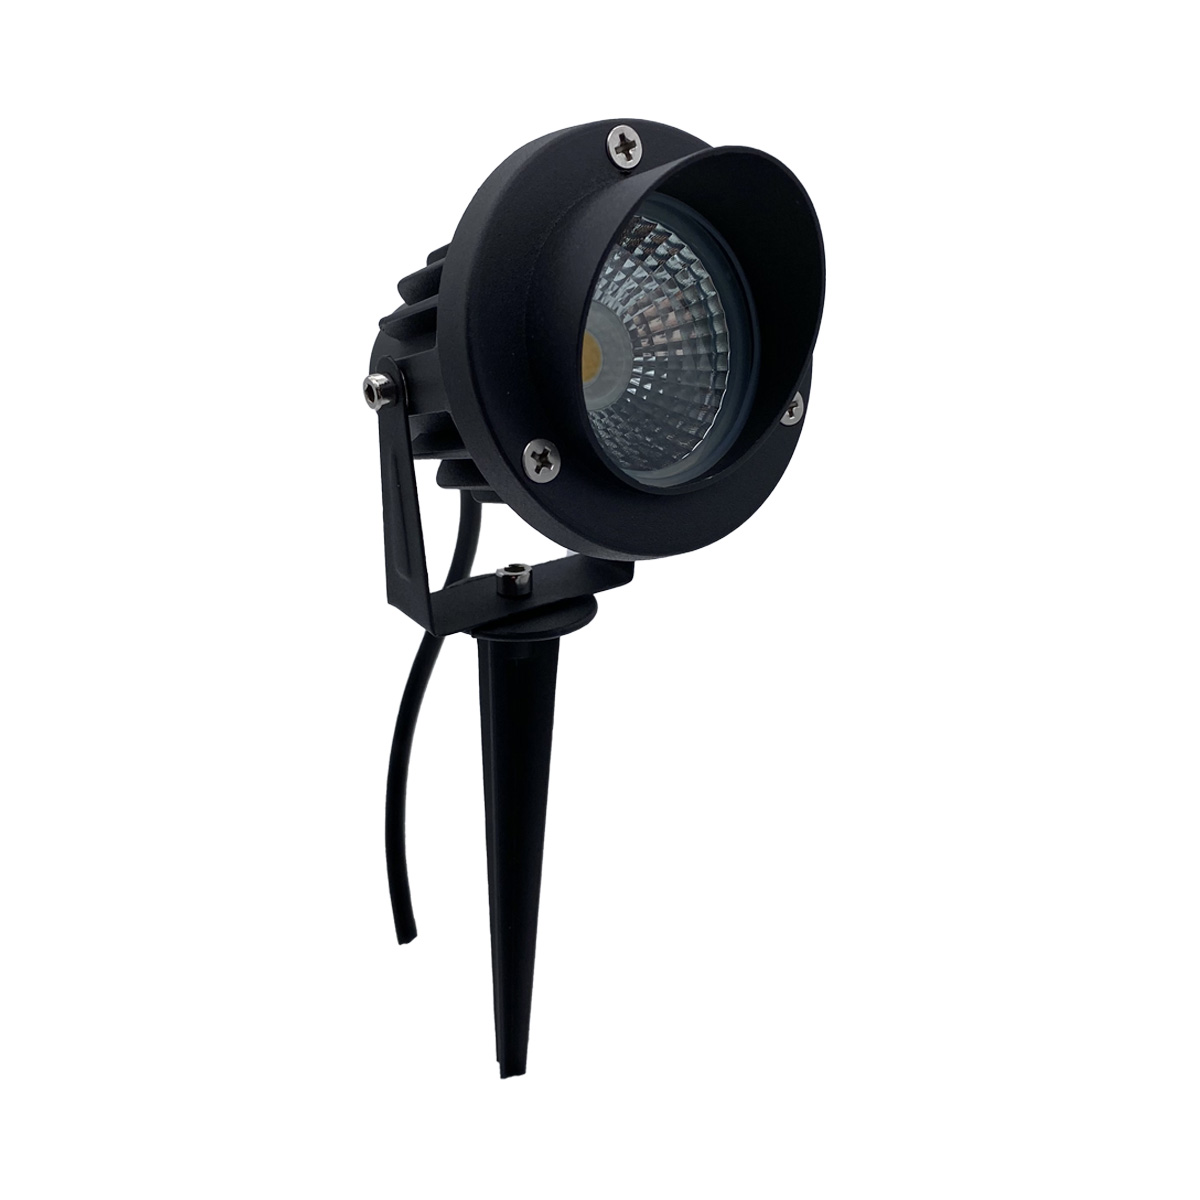 Projecteur à LED épi 6W éclairage de jardin en plein air F103-6W cob led